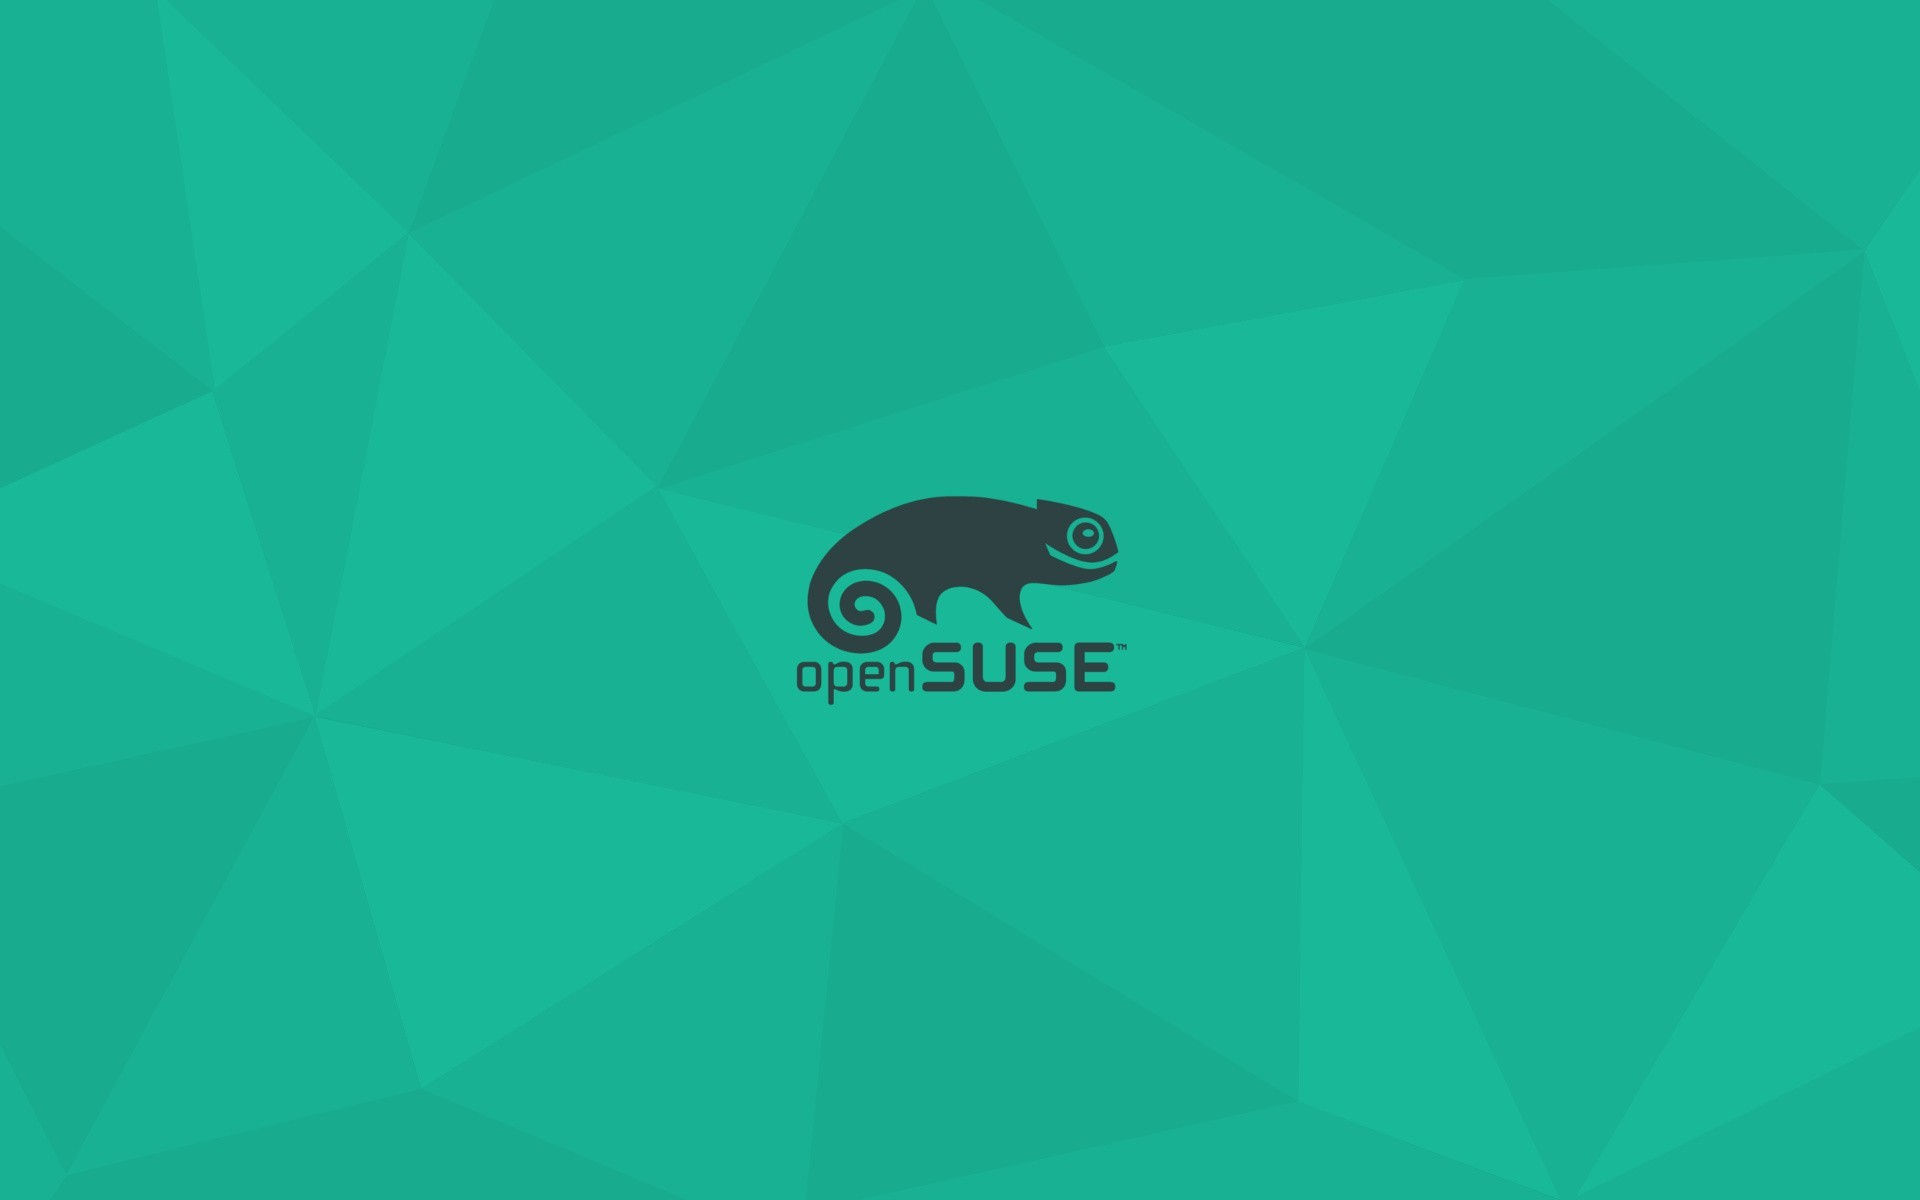 openSUSE Says Goodbye to AMD/ATI Catalyst (fglrx) Proprietary